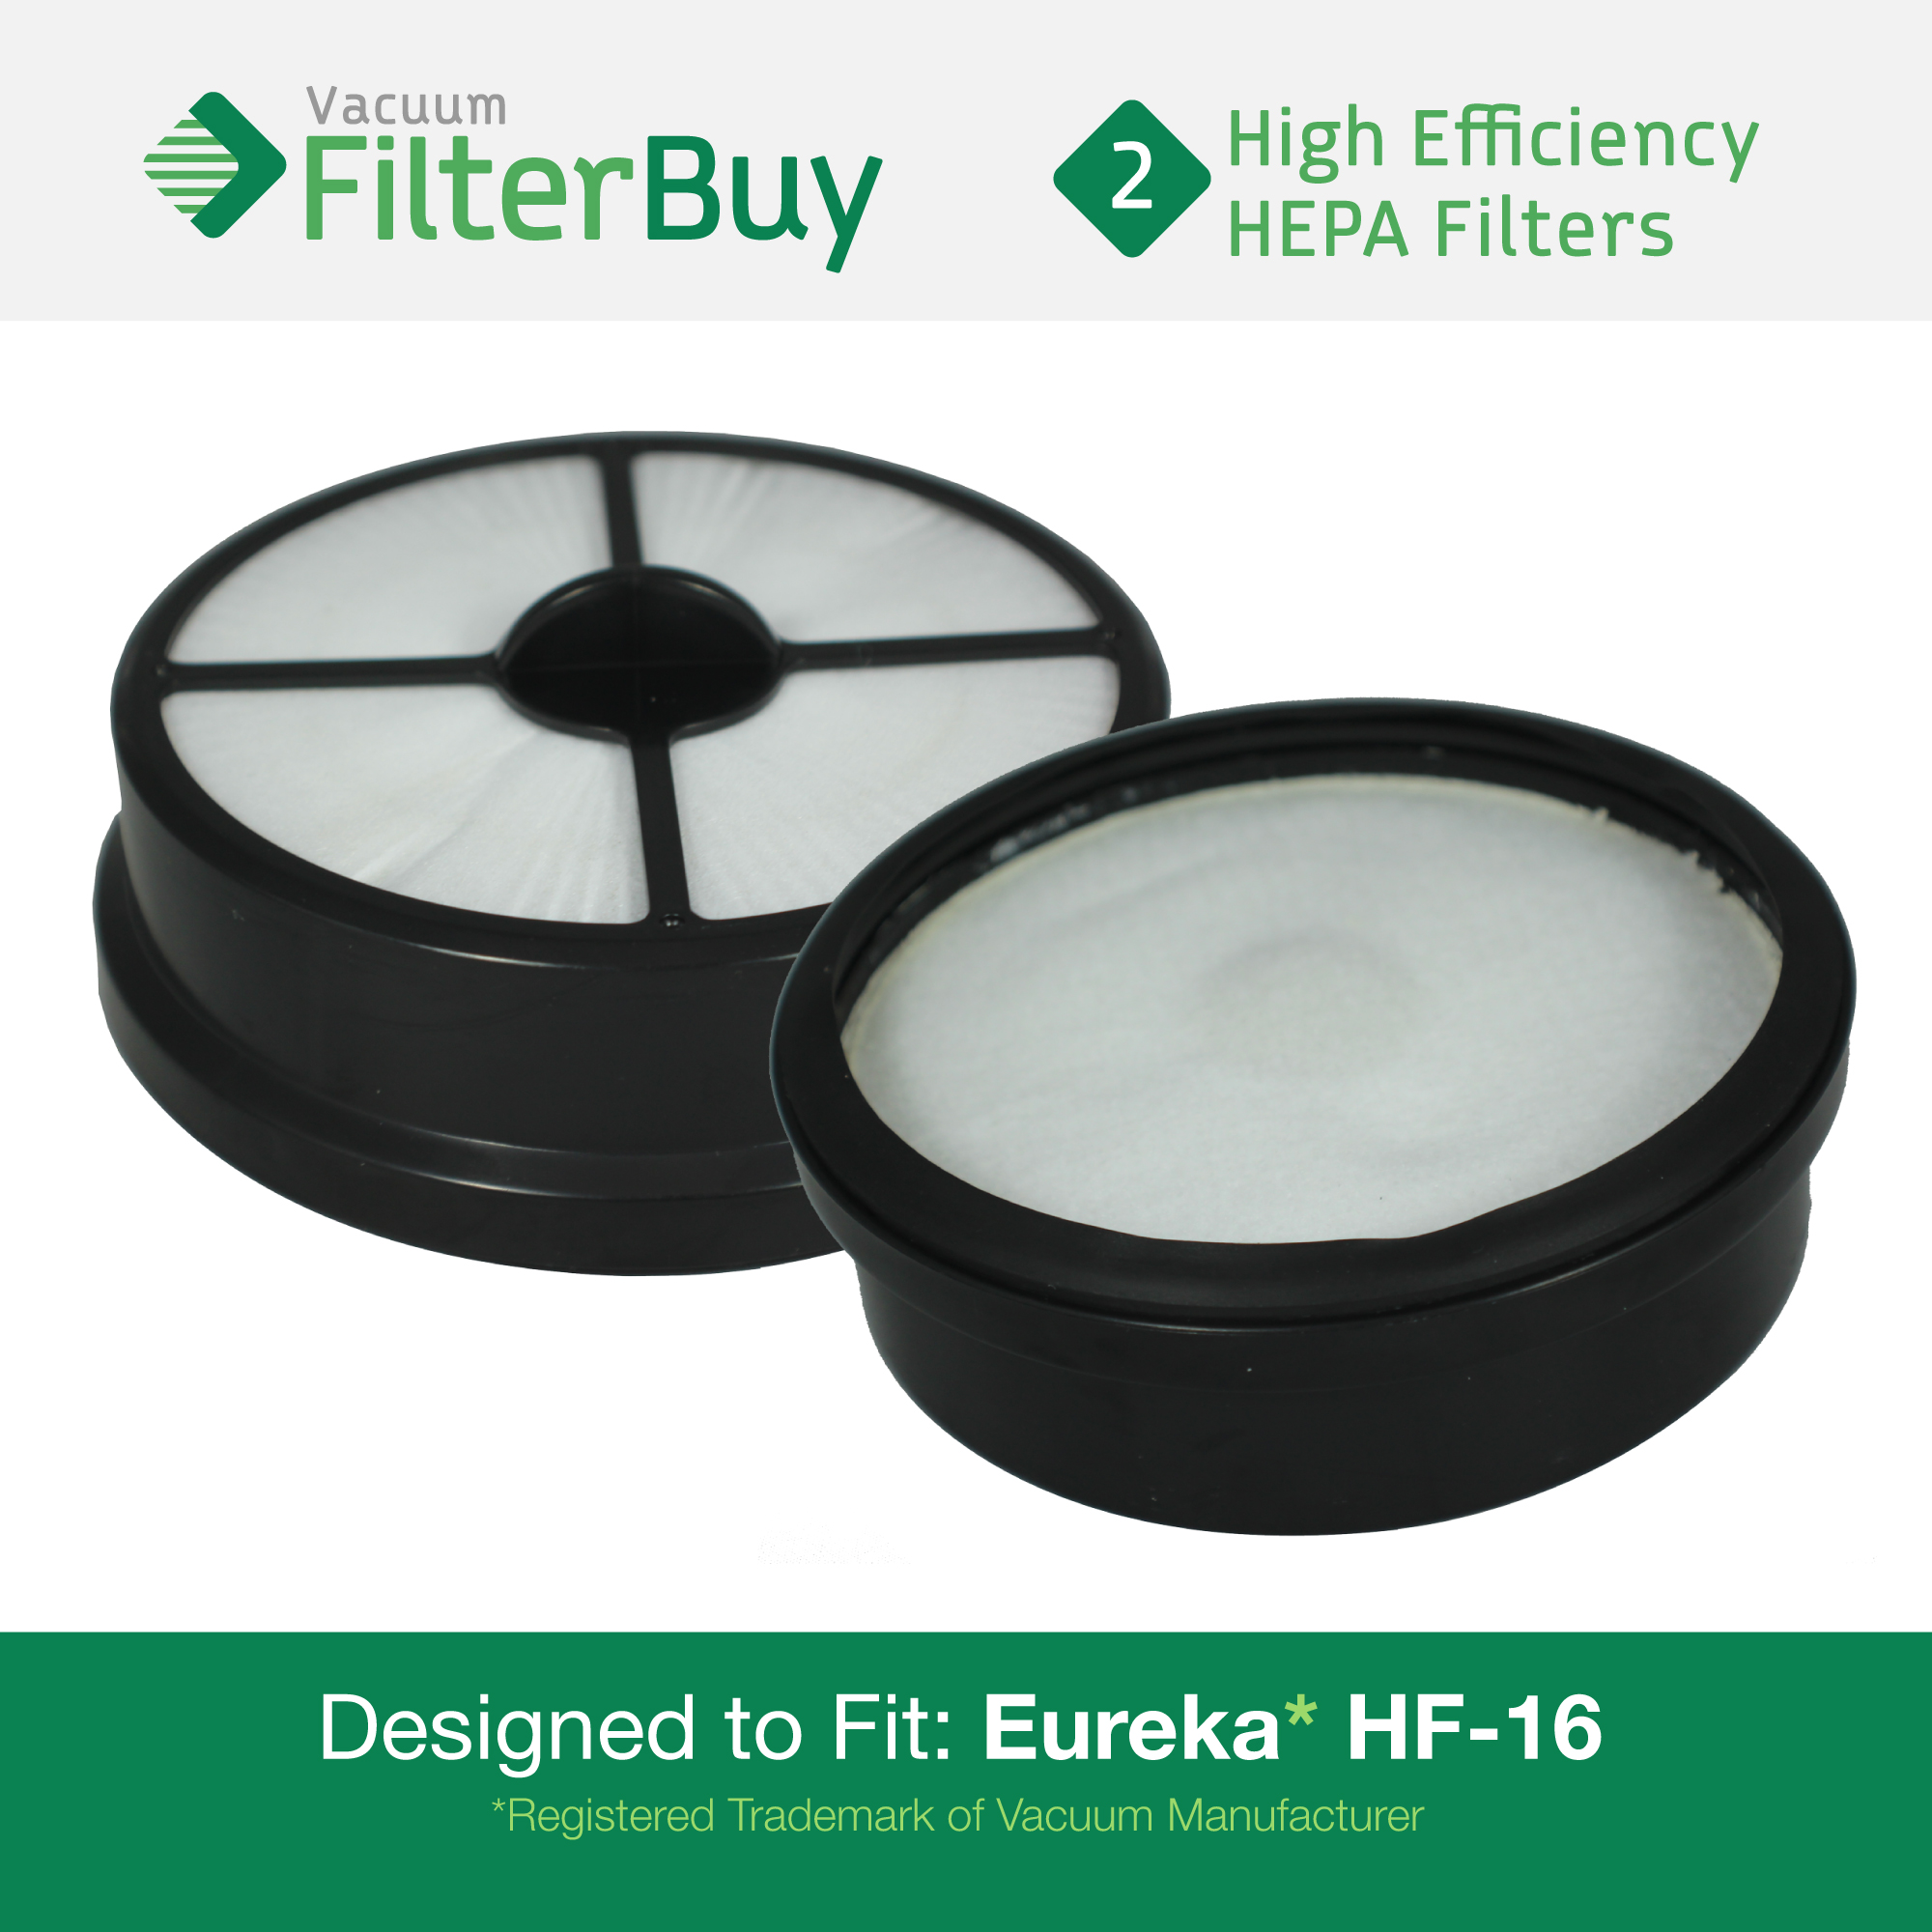 2 - Eureka HF-16 (HF16) HEPA Replacement Filters, Part #'s 68115, 68715, 68115A & 67806.  Designed by FilterBuy to fit Eureka Air Speed Zuum AS5203A Upright Vacuum